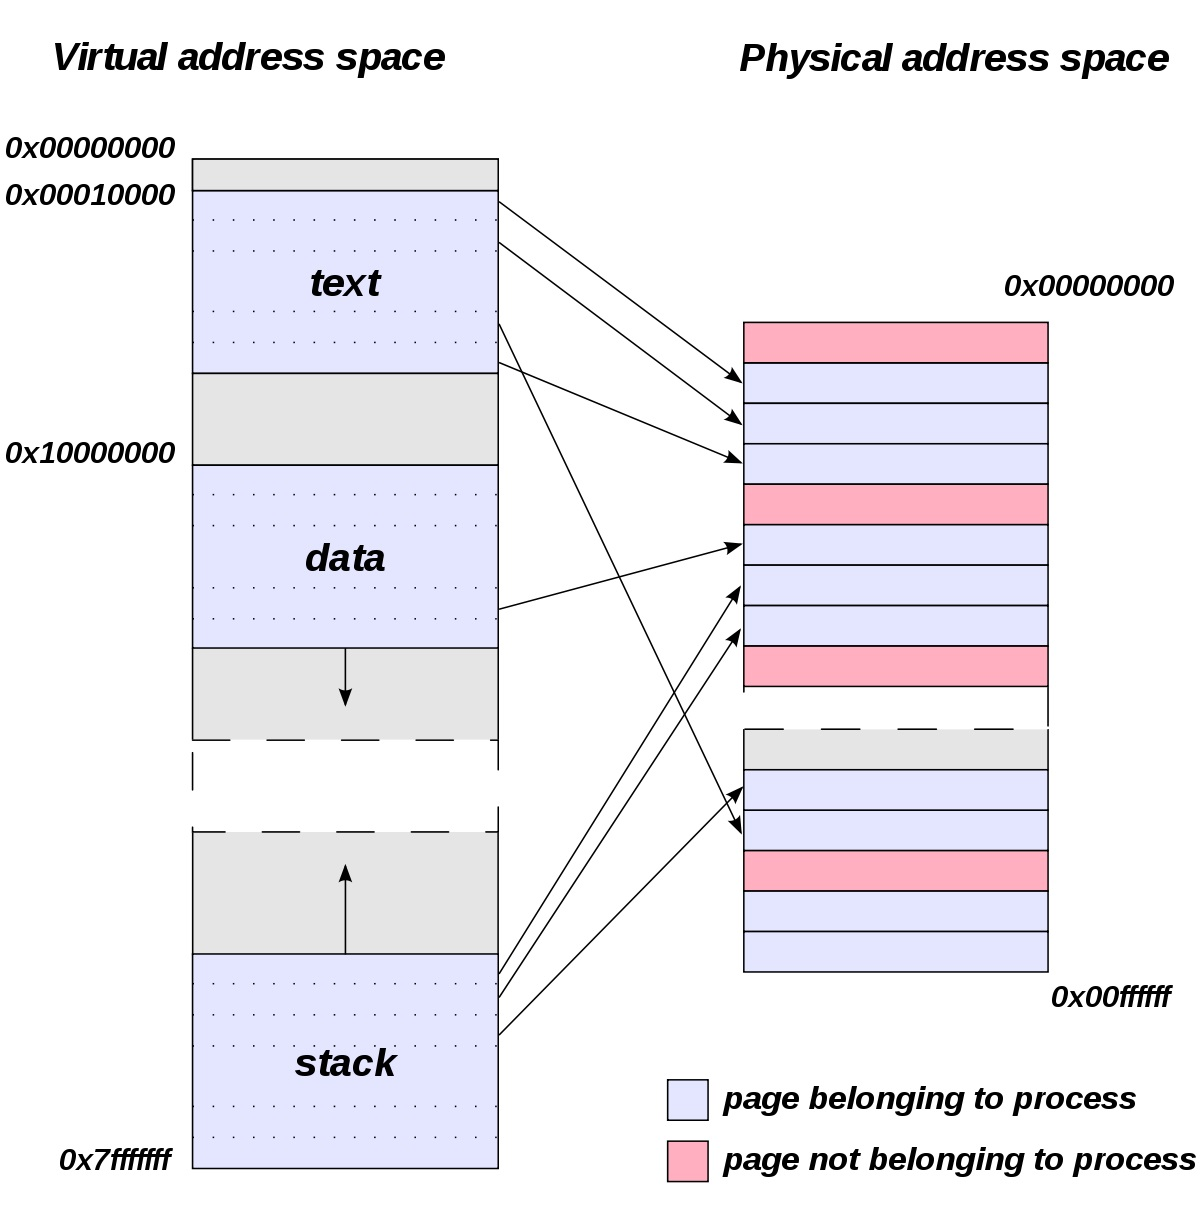 Meftah-Virtual_address_space_and_physical_address_space_relationship.jpg